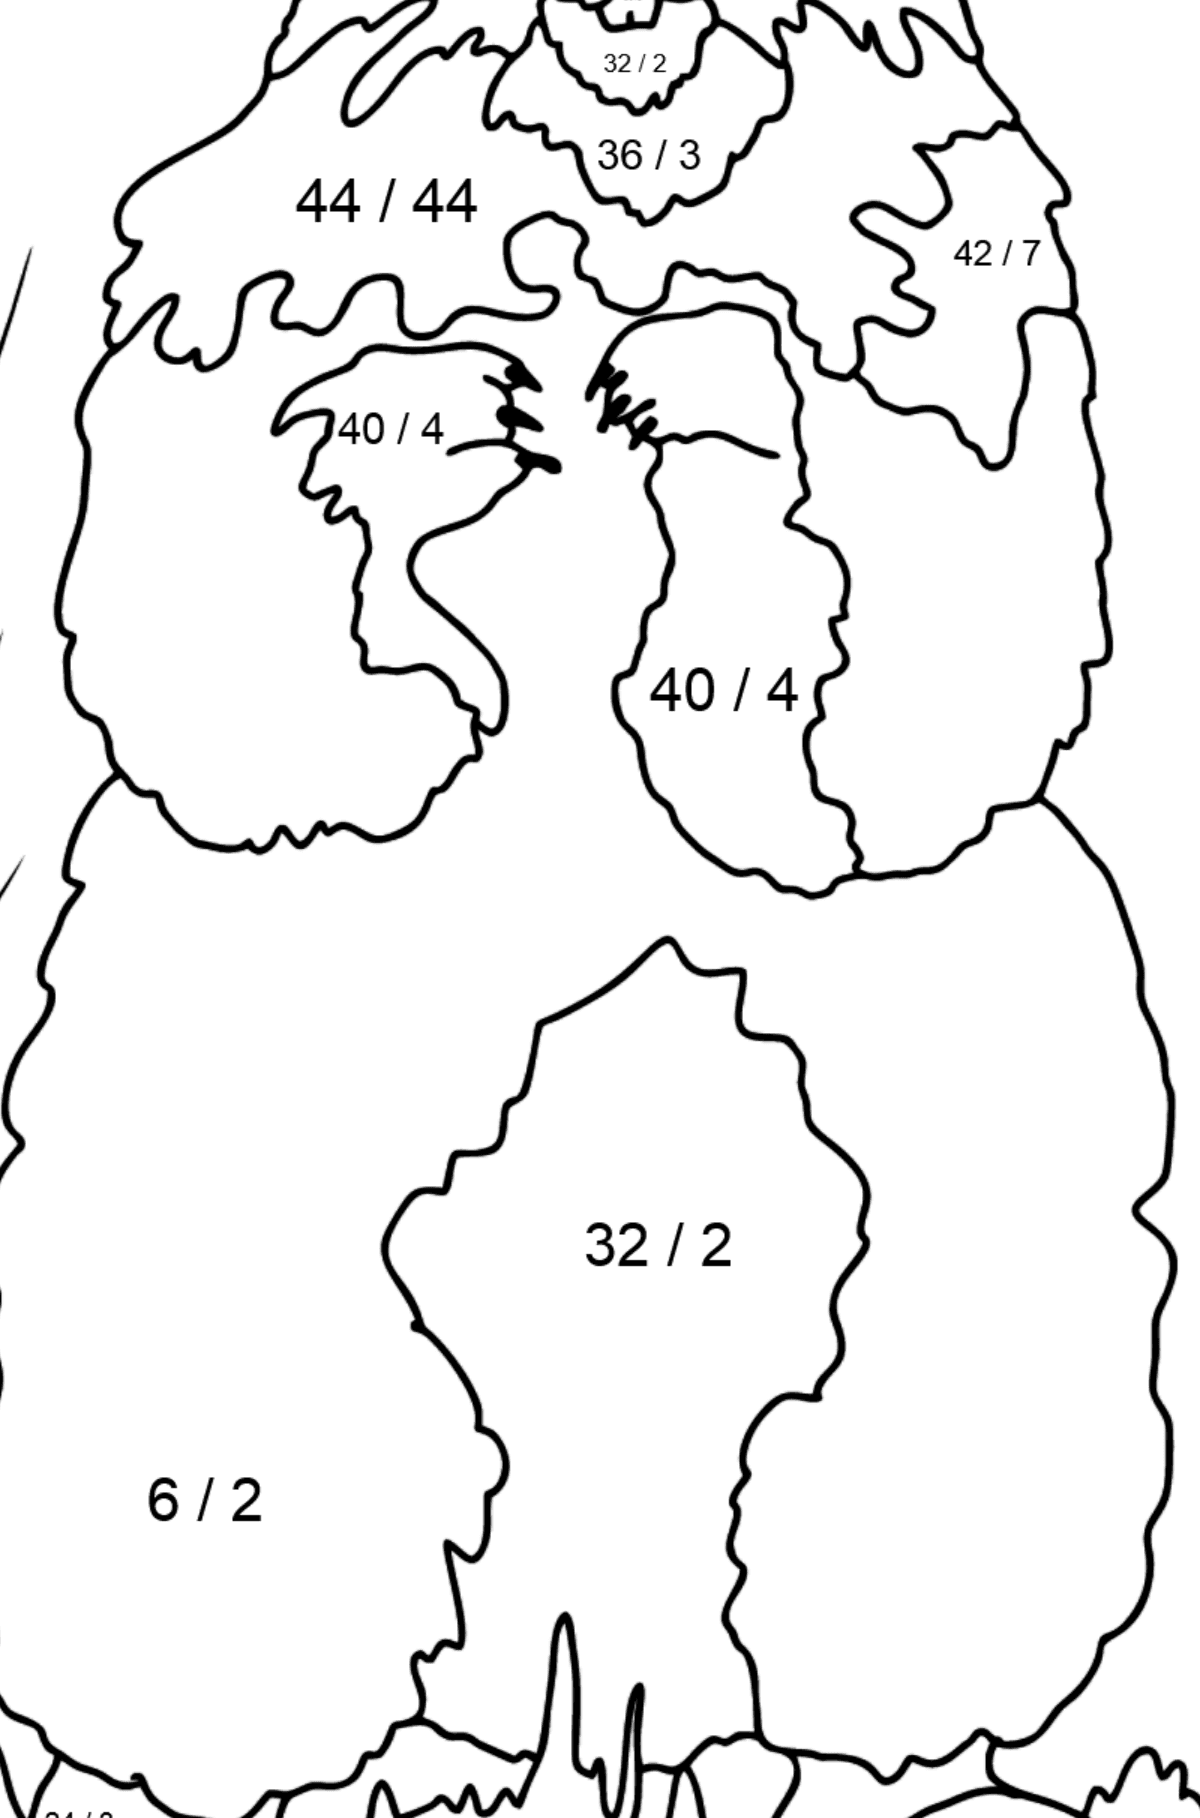 Coloring Page - A Groundhog is Looking out of Its Burrow - Math Coloring - Division for Kids